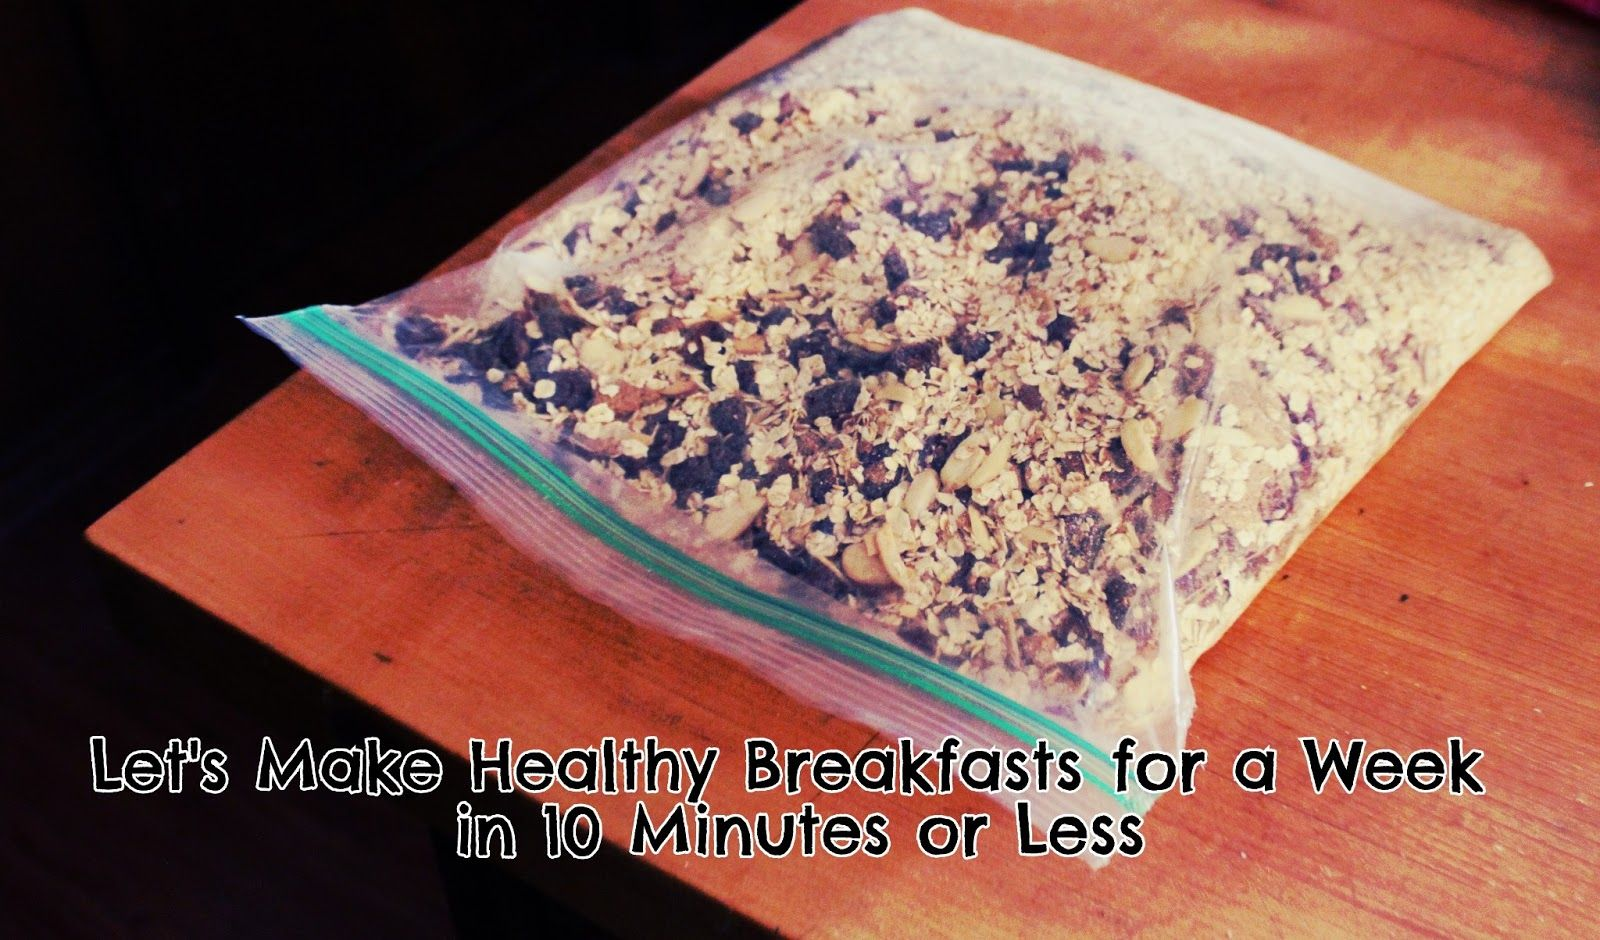 bare feet on the dashboard: Let's Make Healthy Breakfasts for a Week in 10 Minutes or Less